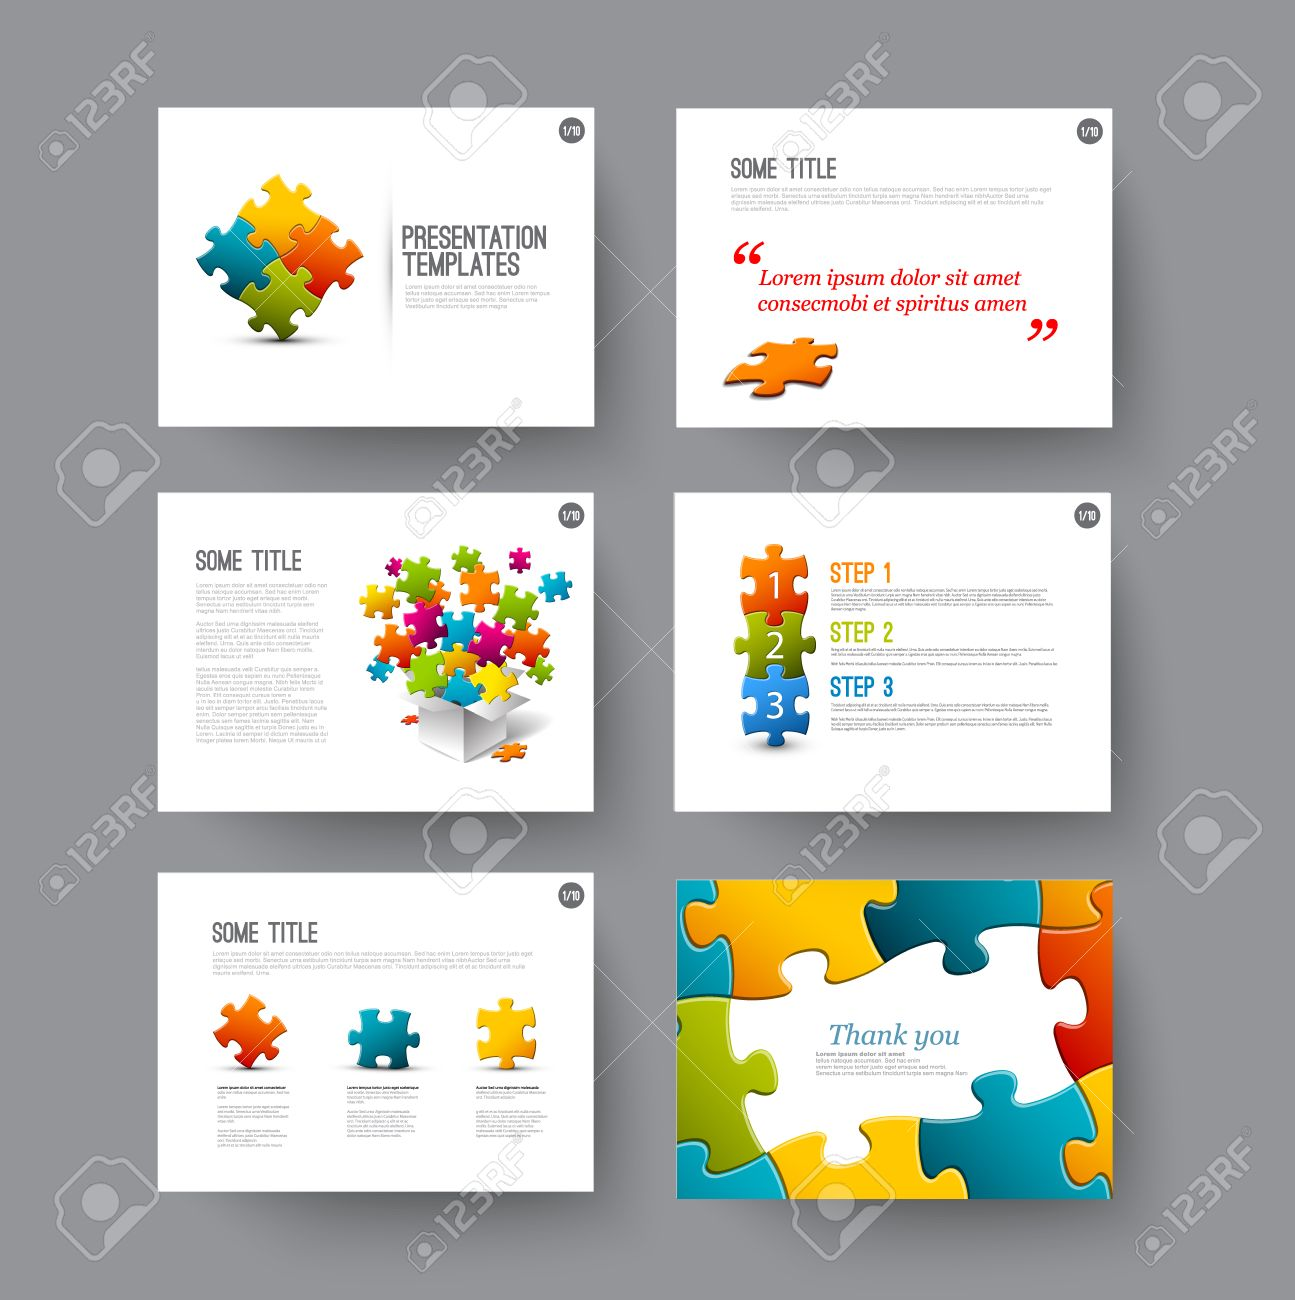 Vector Template for presentation slides with puzzle pieces - 41660110